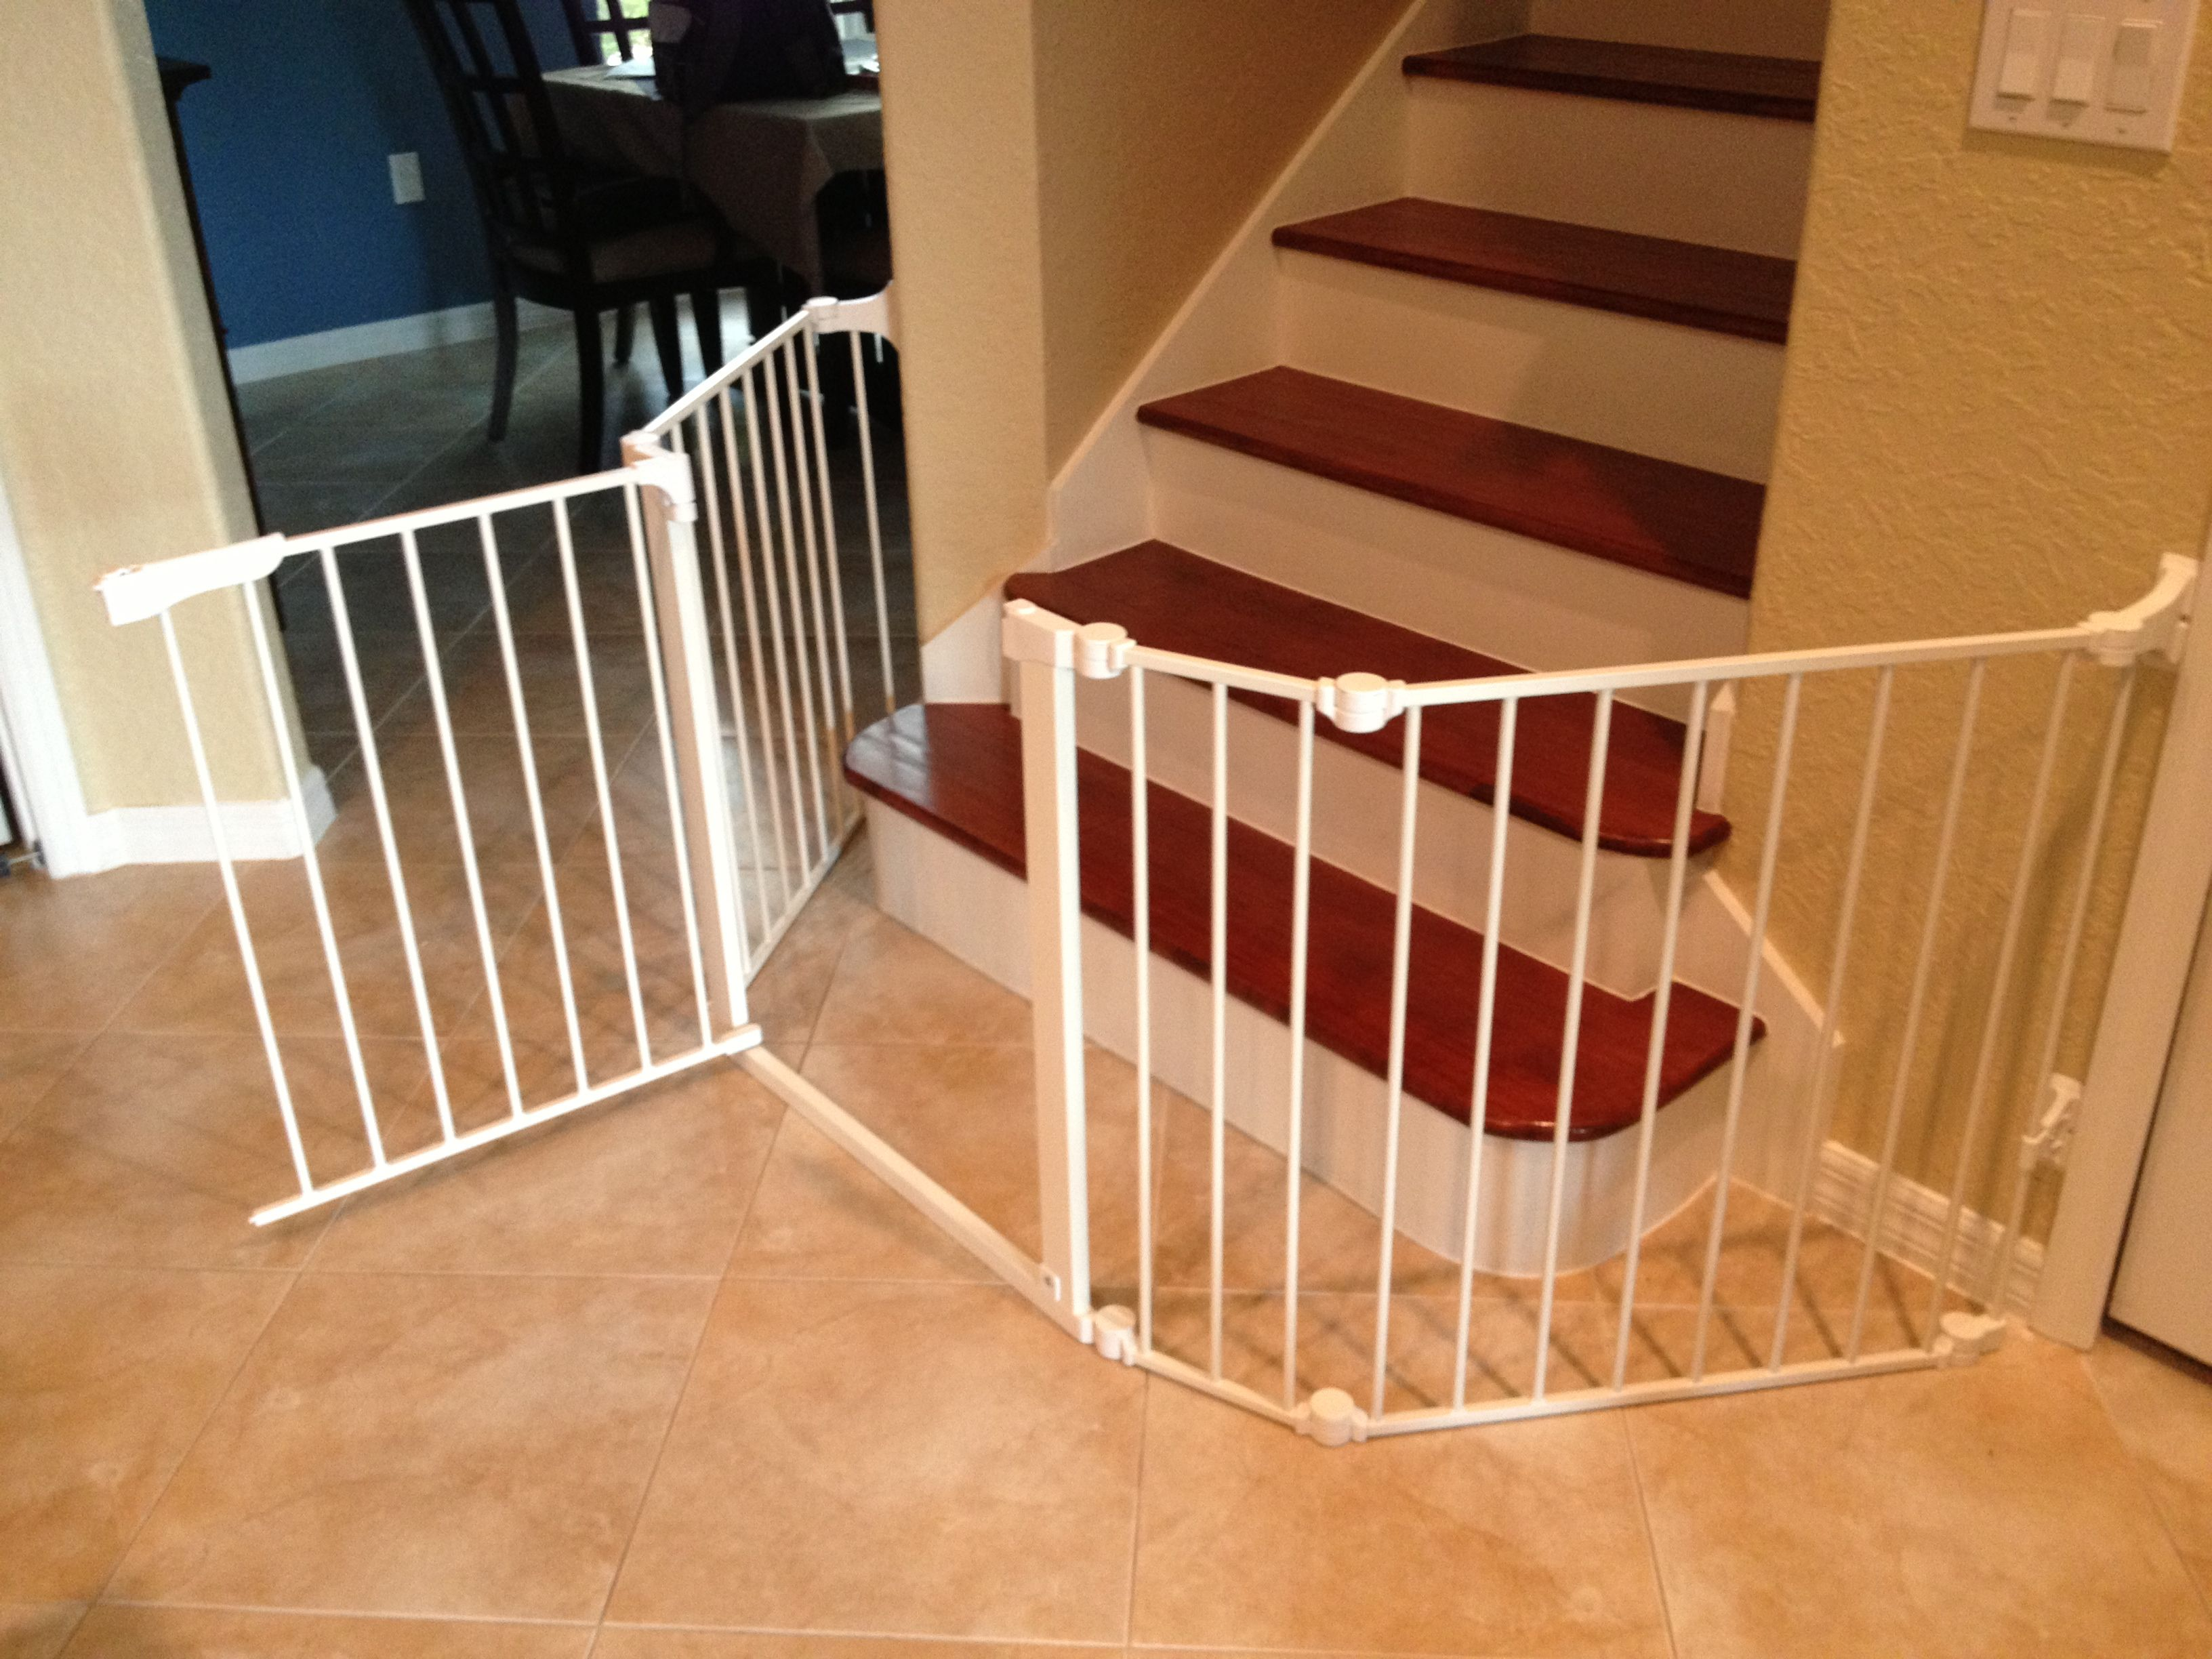 Baby Gate Bottom Of Stairs Childseniorsafety Com